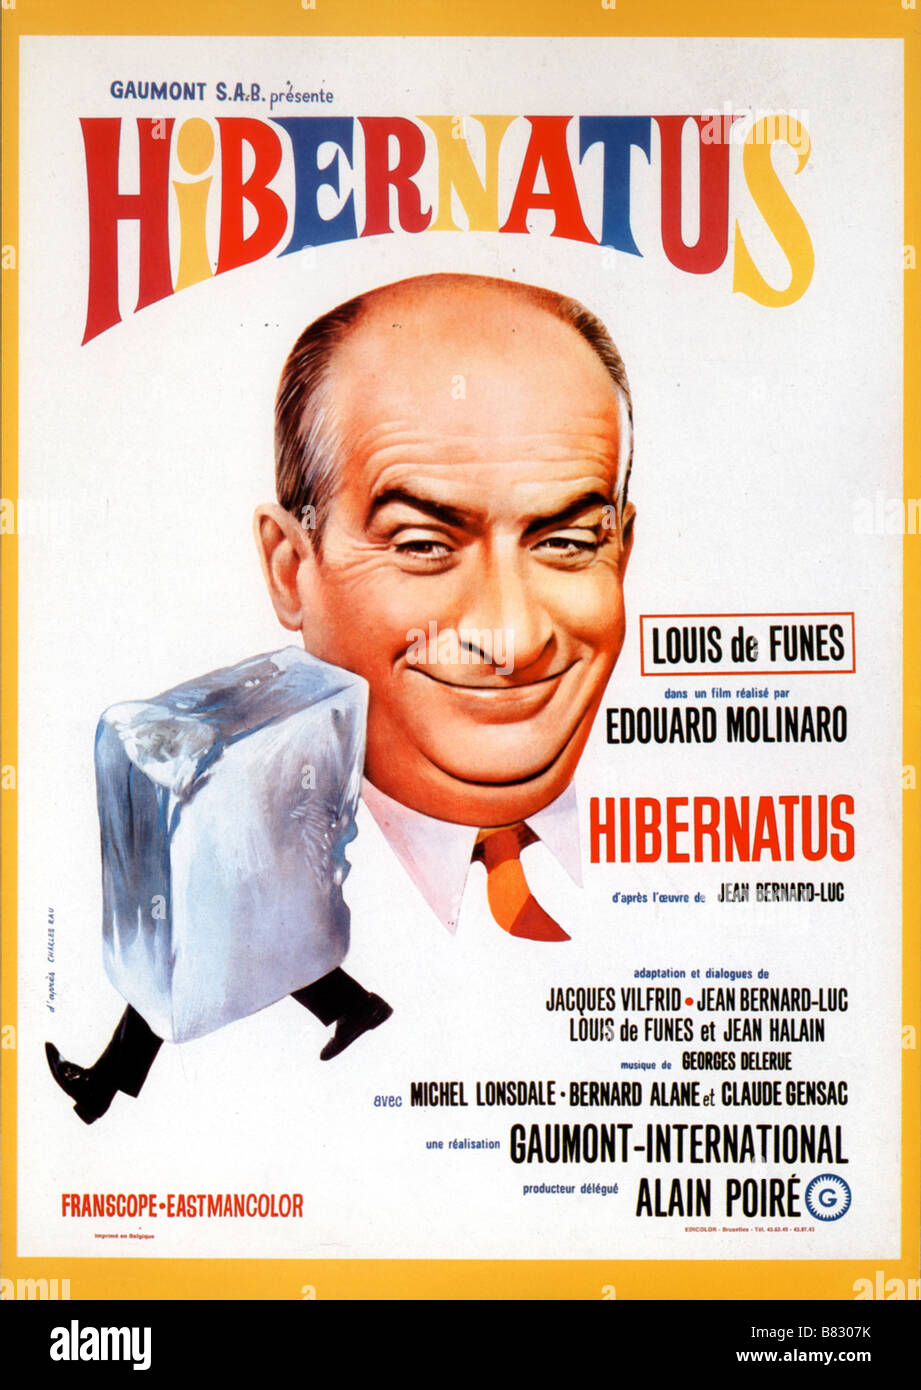 Louis de Funès affiche poster Director Edouard Molinaro Stock Photo ...